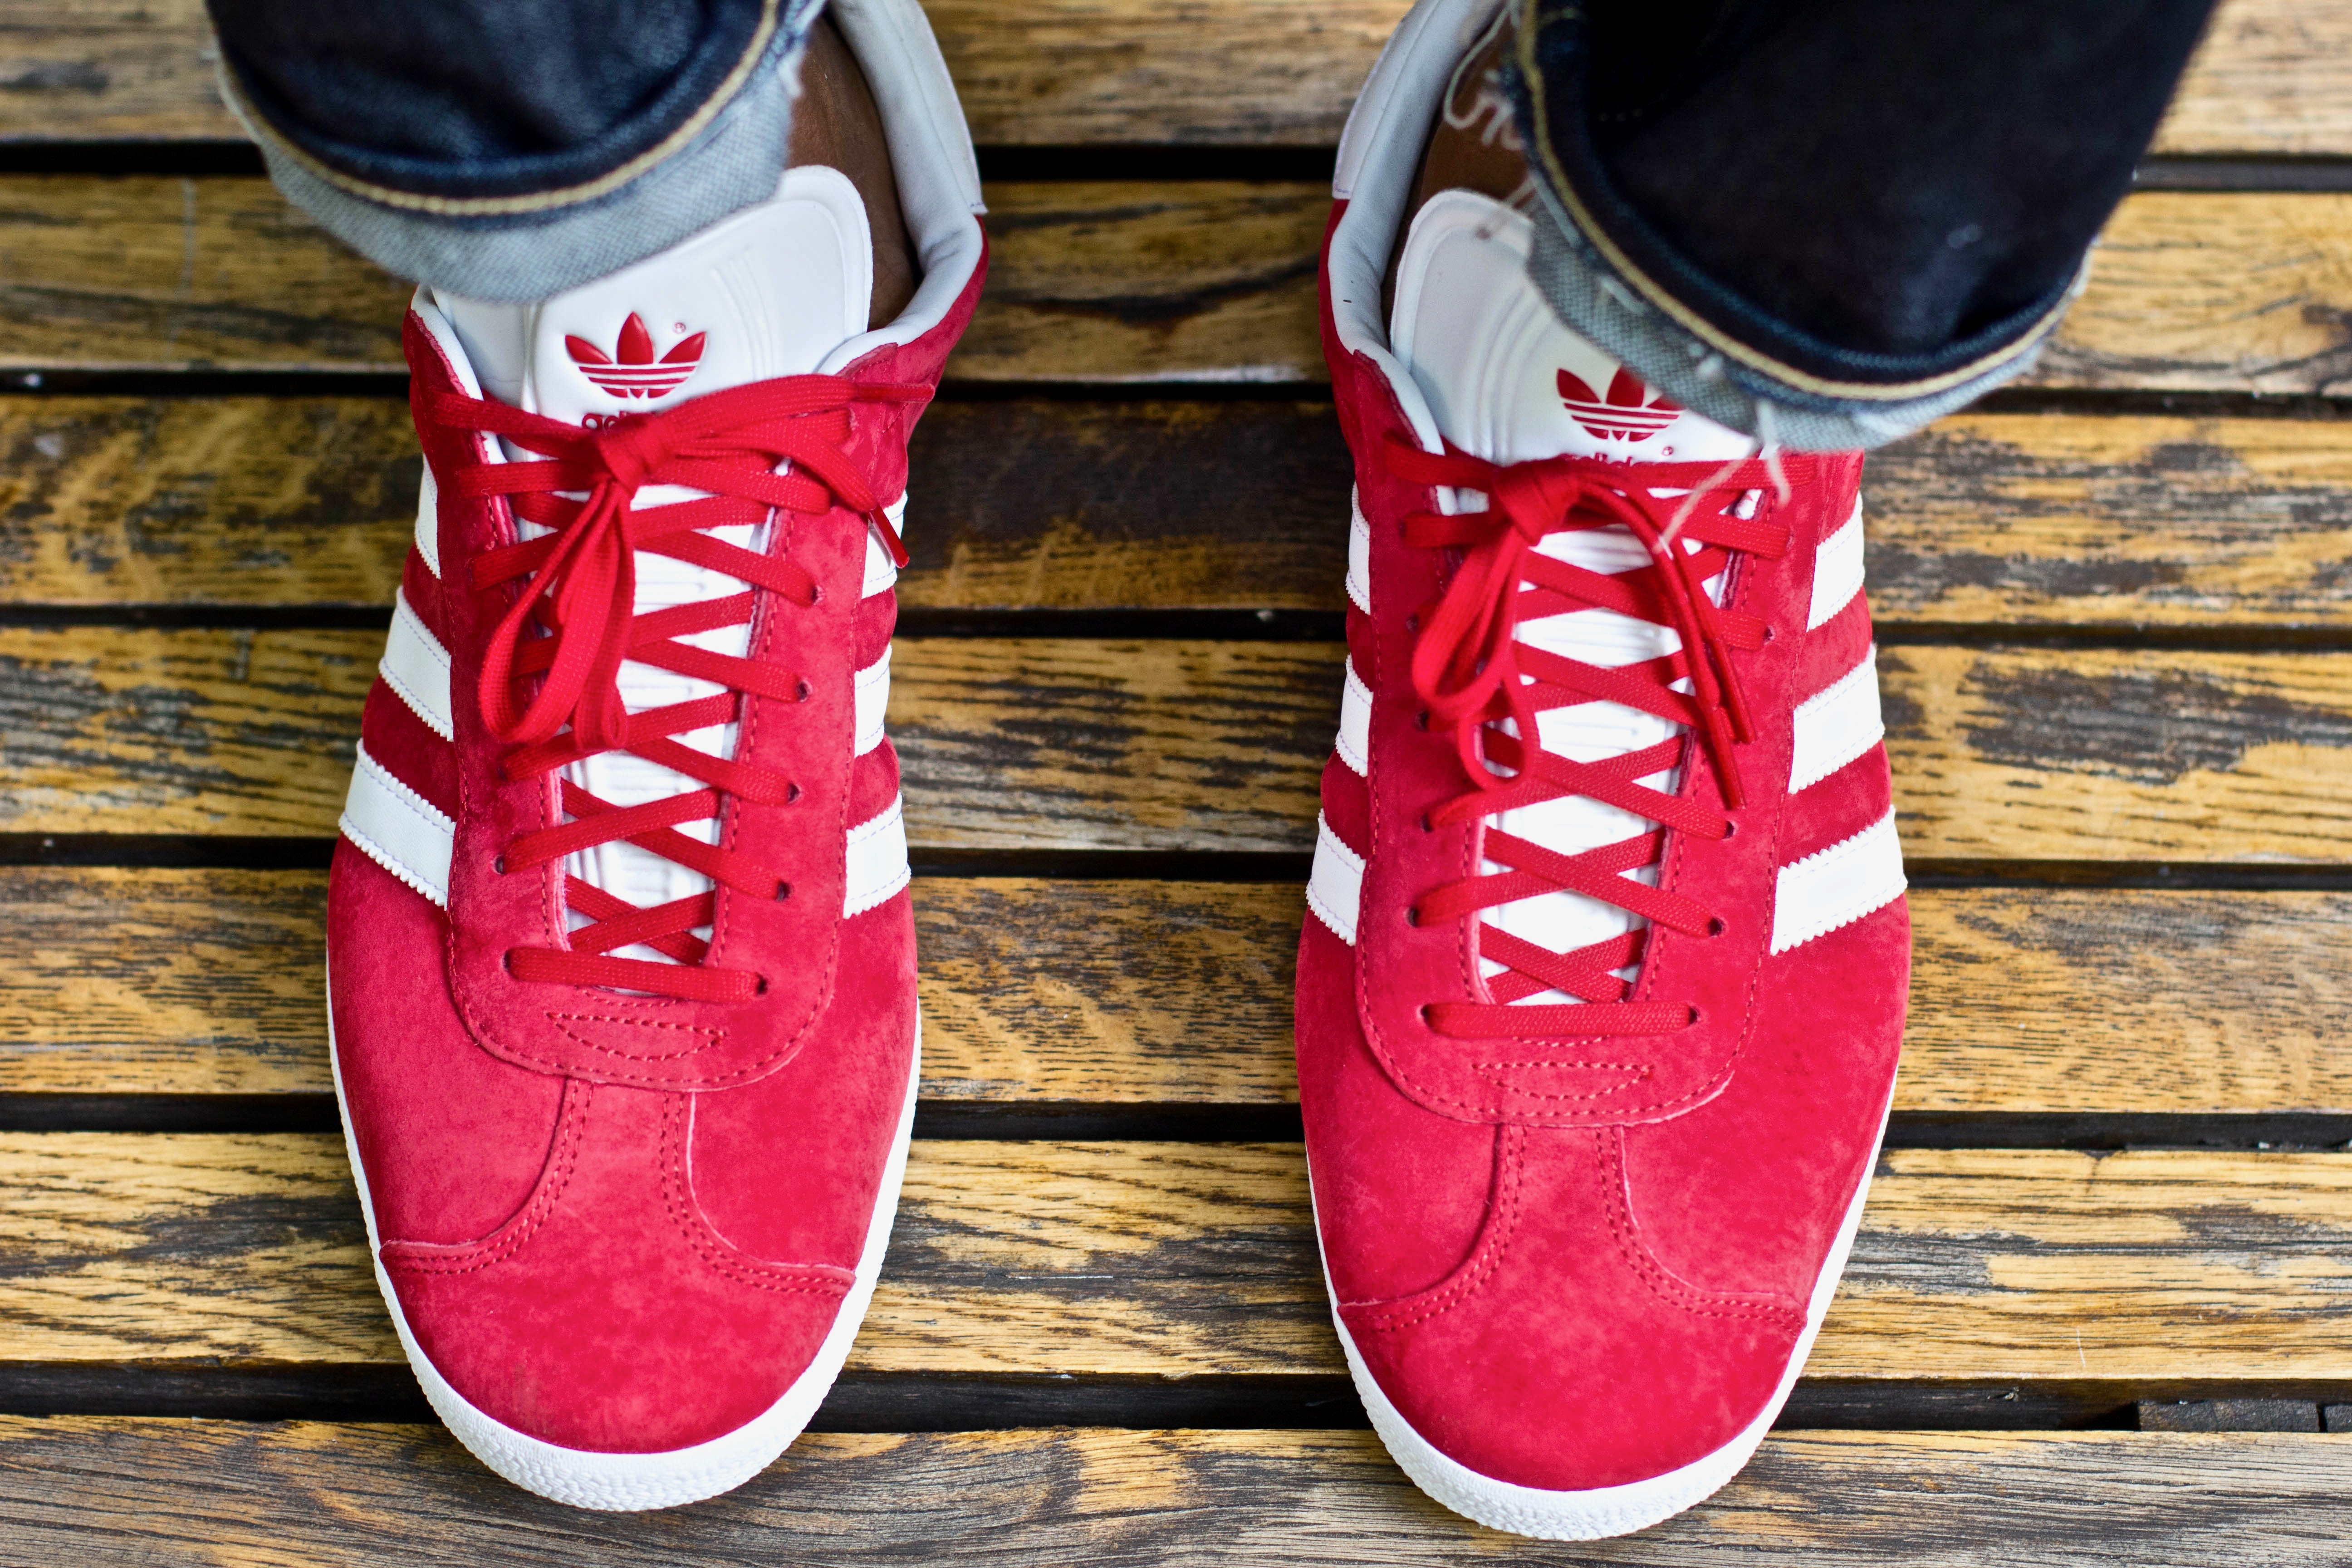 The Resurgence Of The Luxe Suede Adidas Gazelle Men S Style Pro